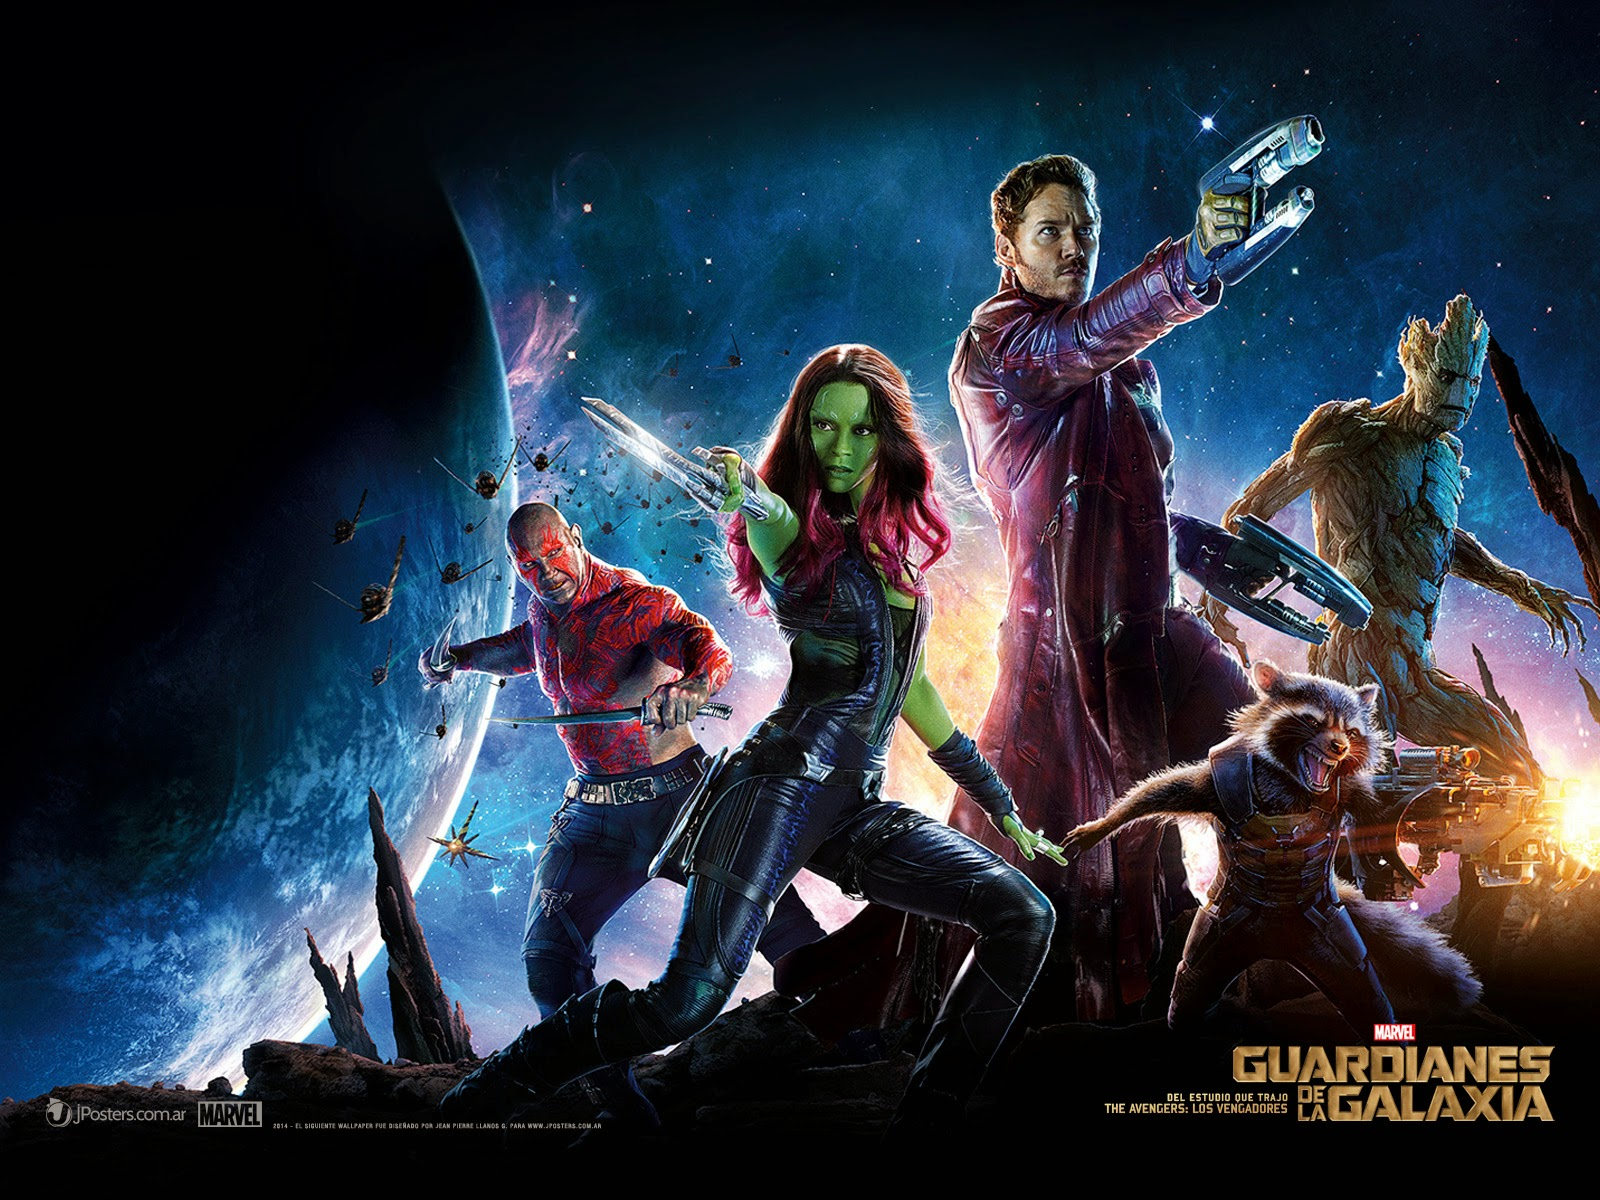 Guardianes De La Galaxia Wallpaper - Star Lord Gamora Rocket Drax And Groot , HD Wallpaper & Backgrounds